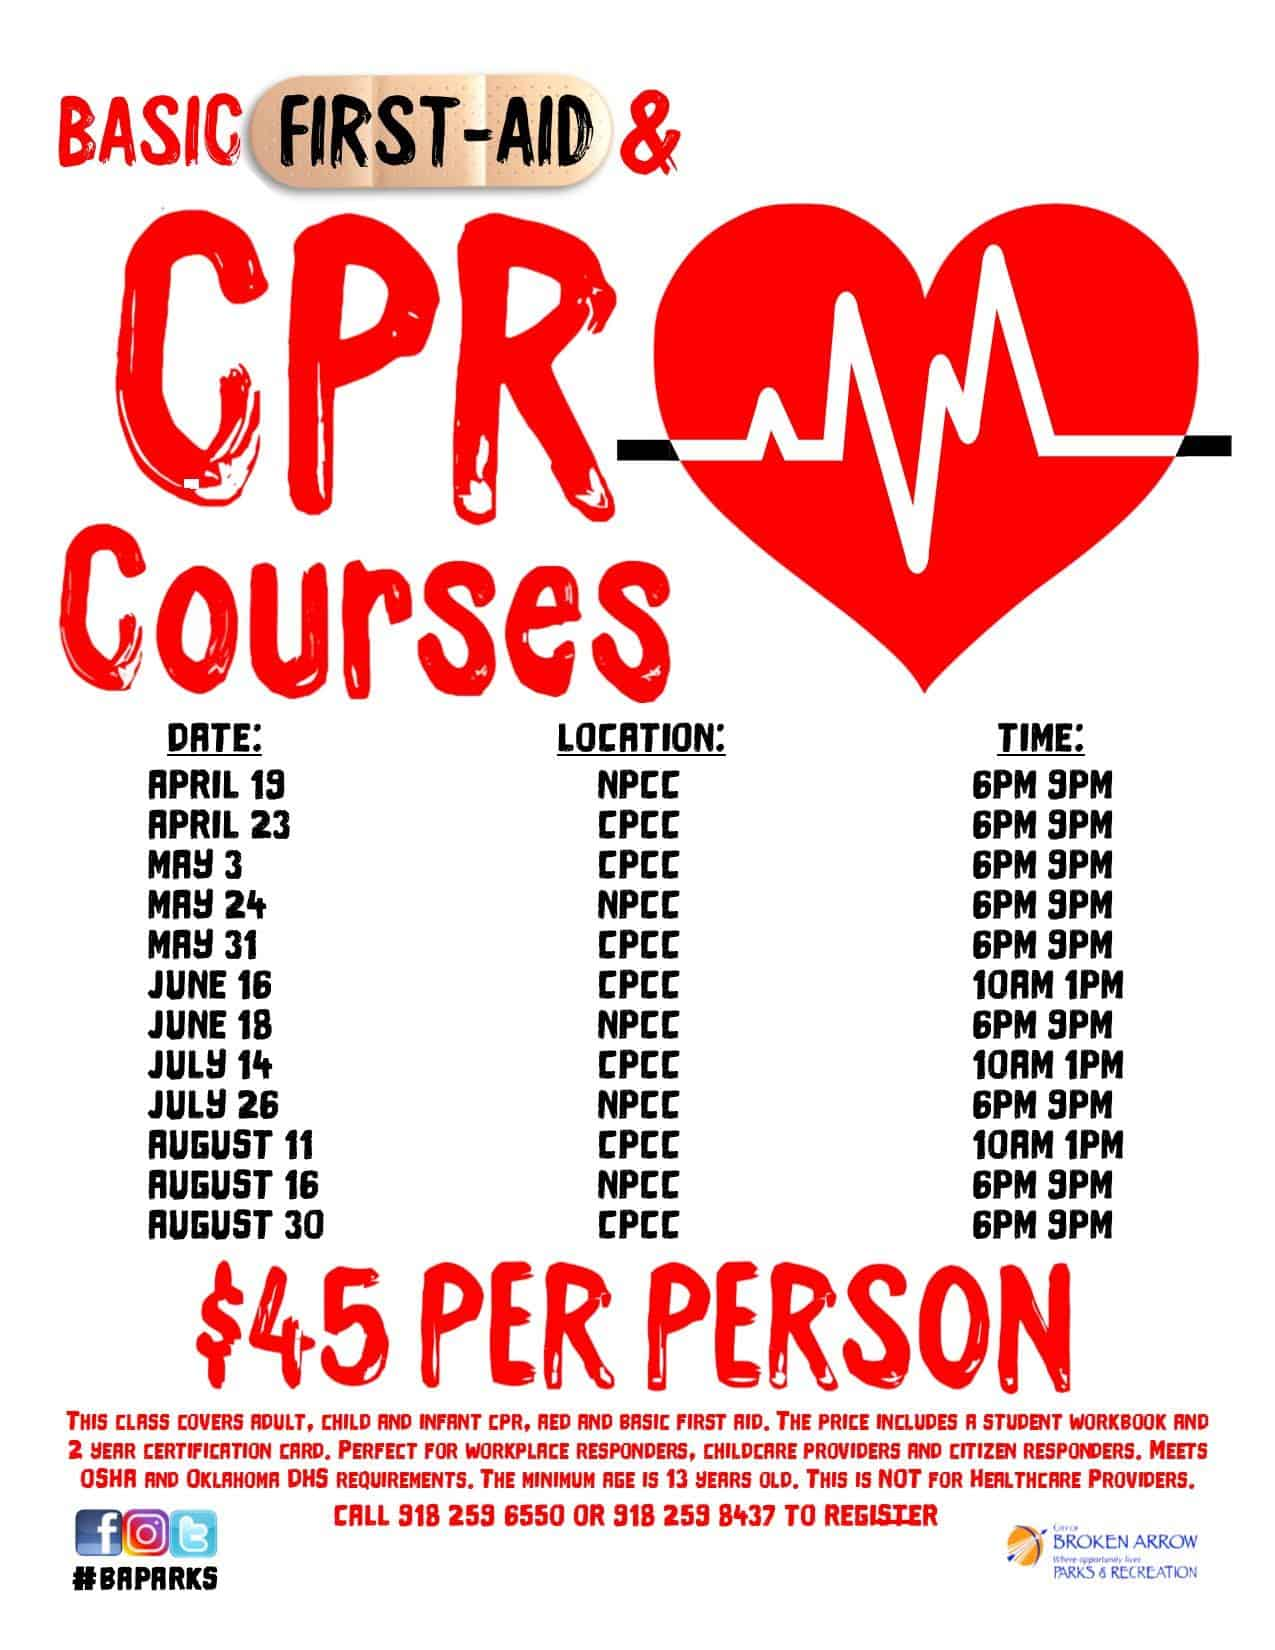 Need to be certified for CPR?